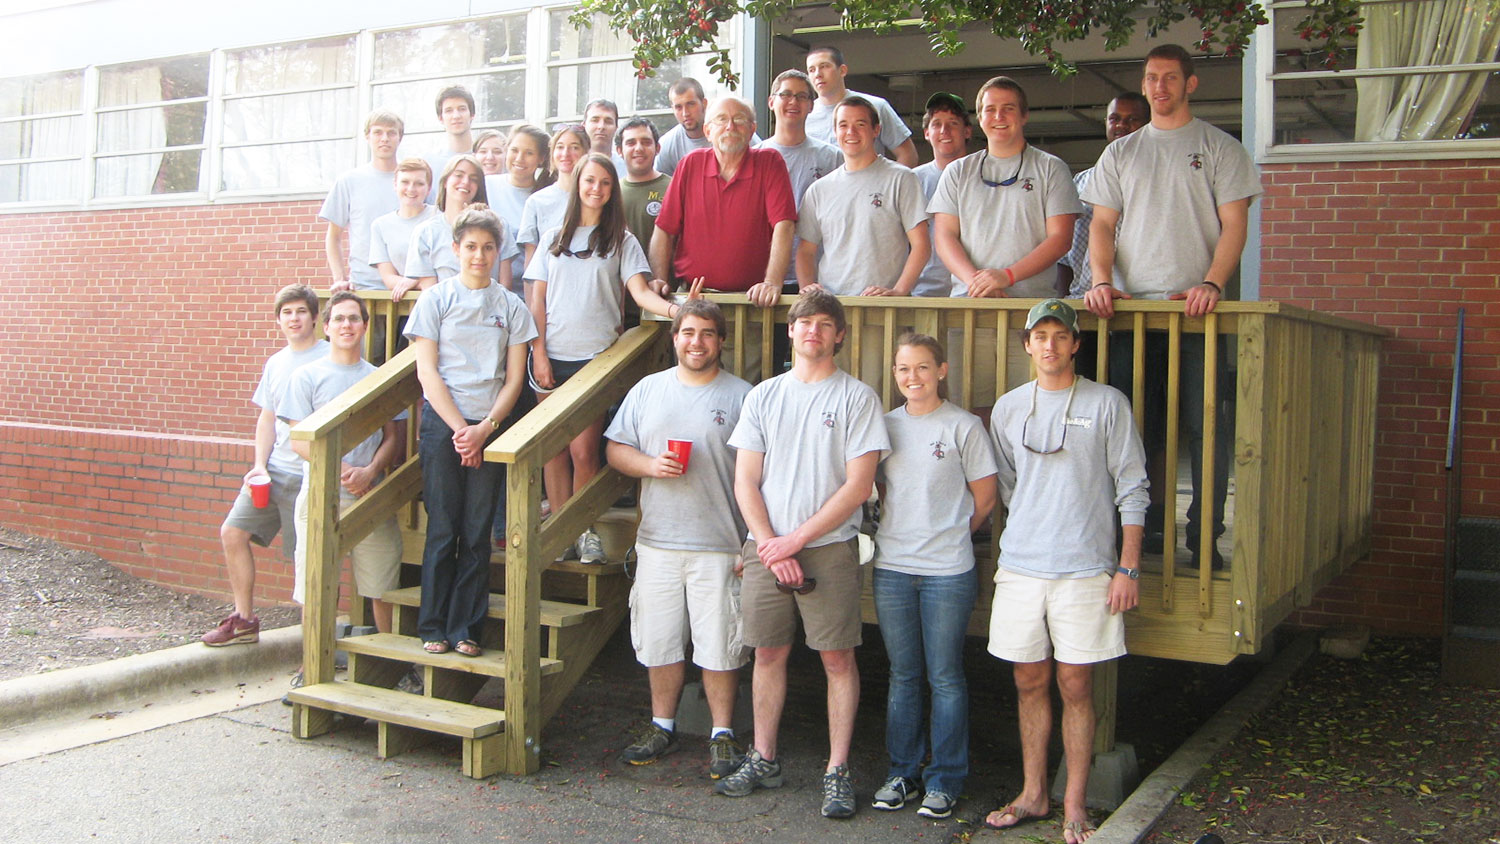 Mike Boyette surrounded by Senior Design Program students on the Weaver Labs porch.